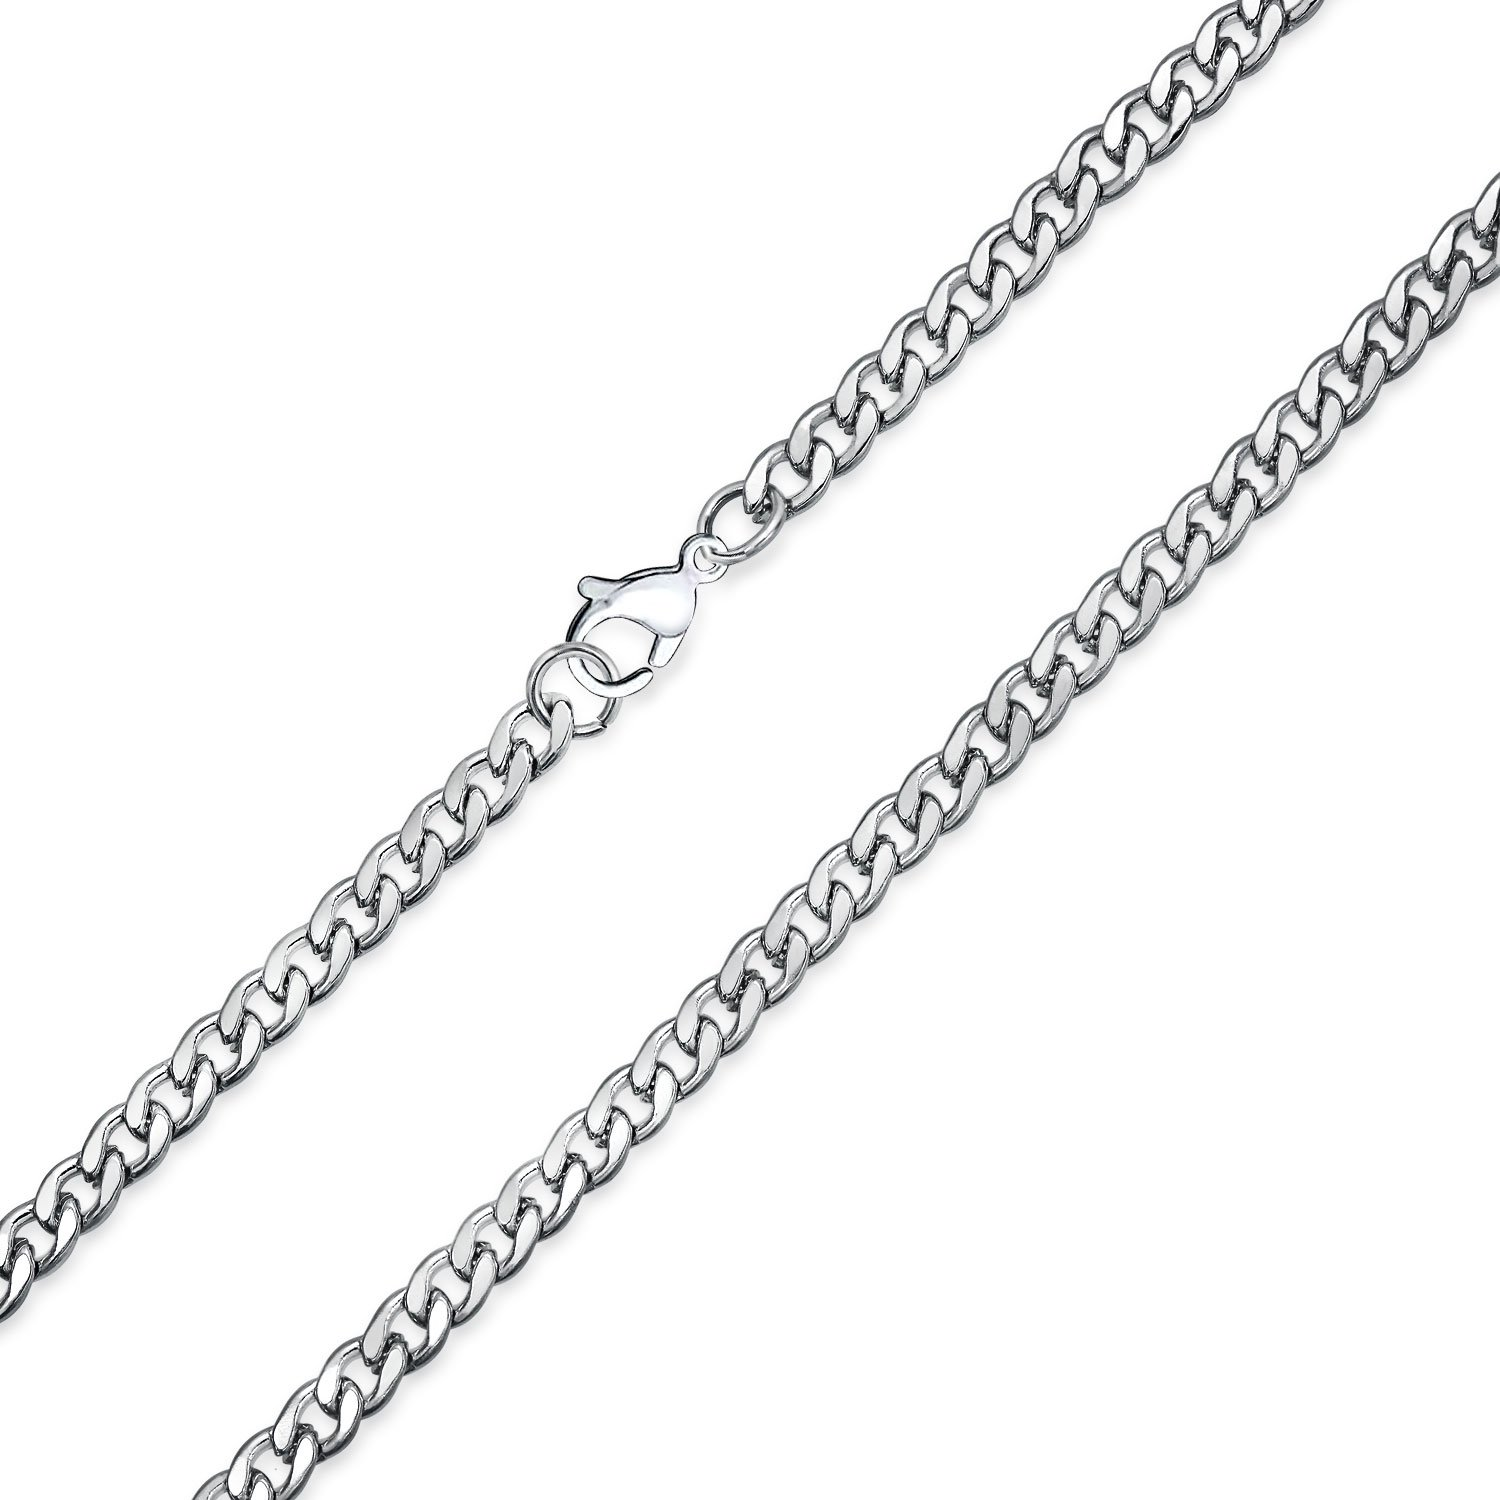 e2a92b0c877dc Bling Jewelry Thin 4 mm Silver Tone Stainless Steel Necklace Cuban Curb  Link Chain for Men 20 to 30 Inch